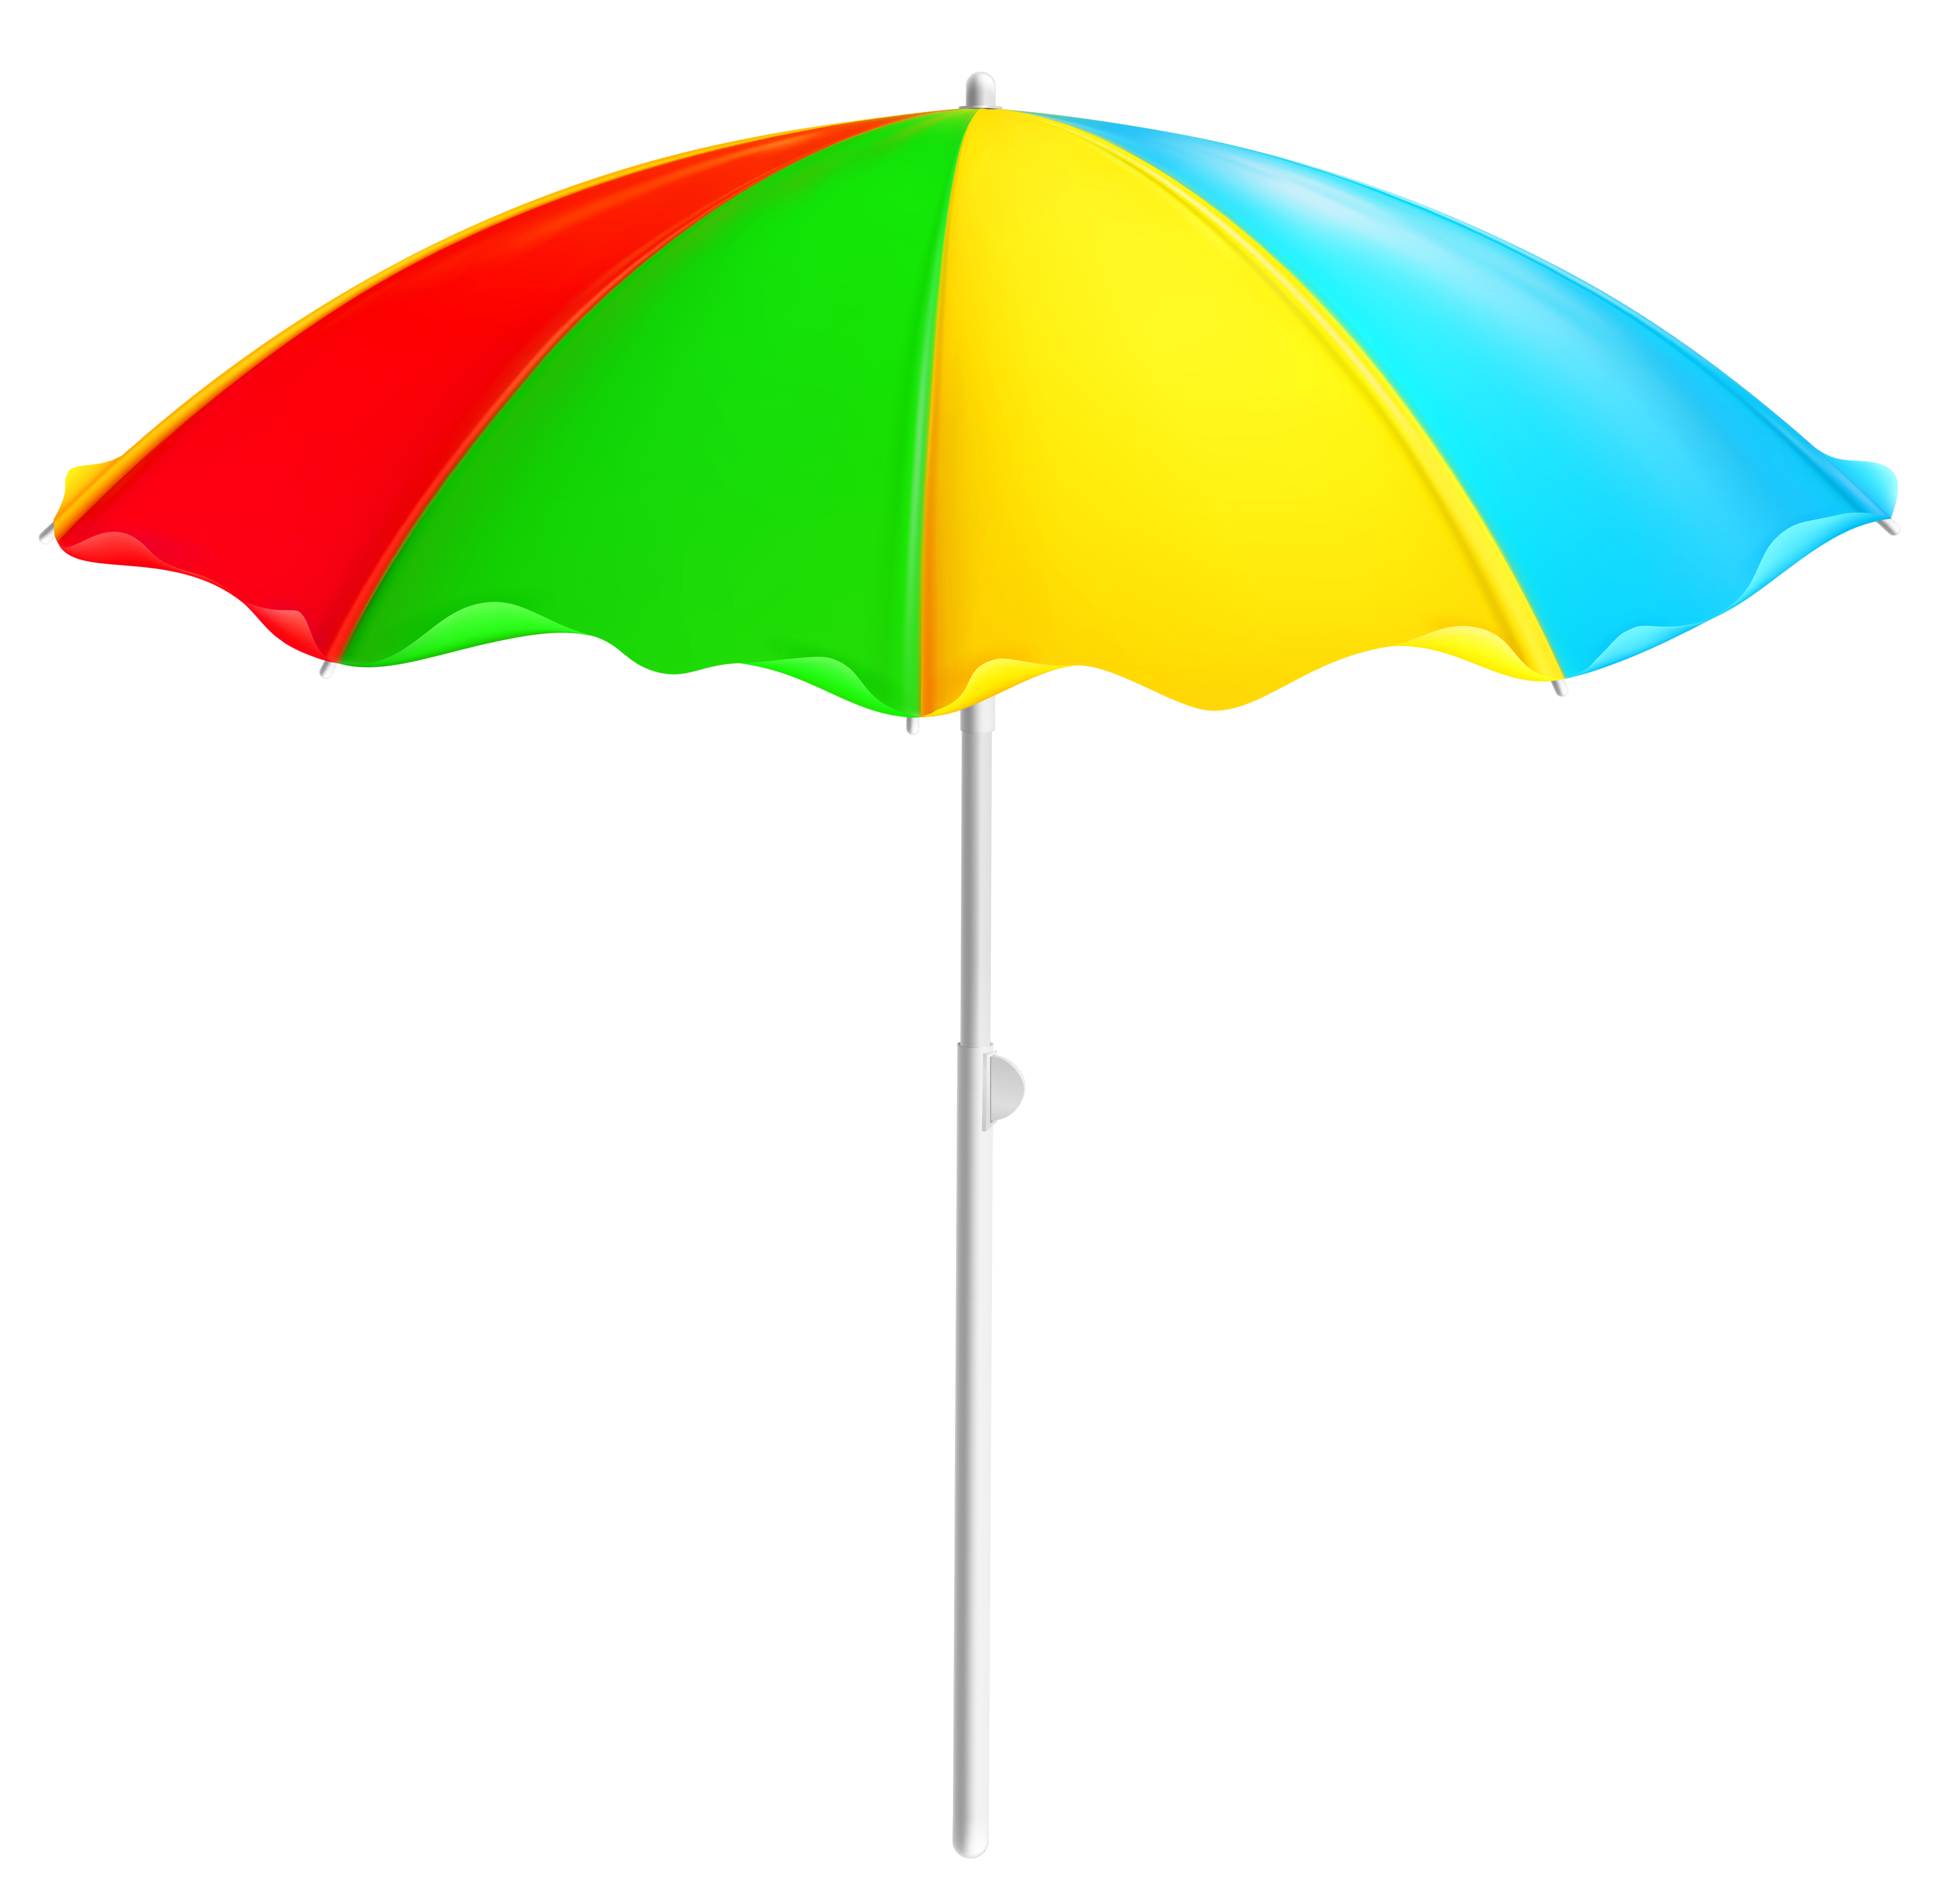 Sunset clipart high resolution. Colorful beach umbrella png